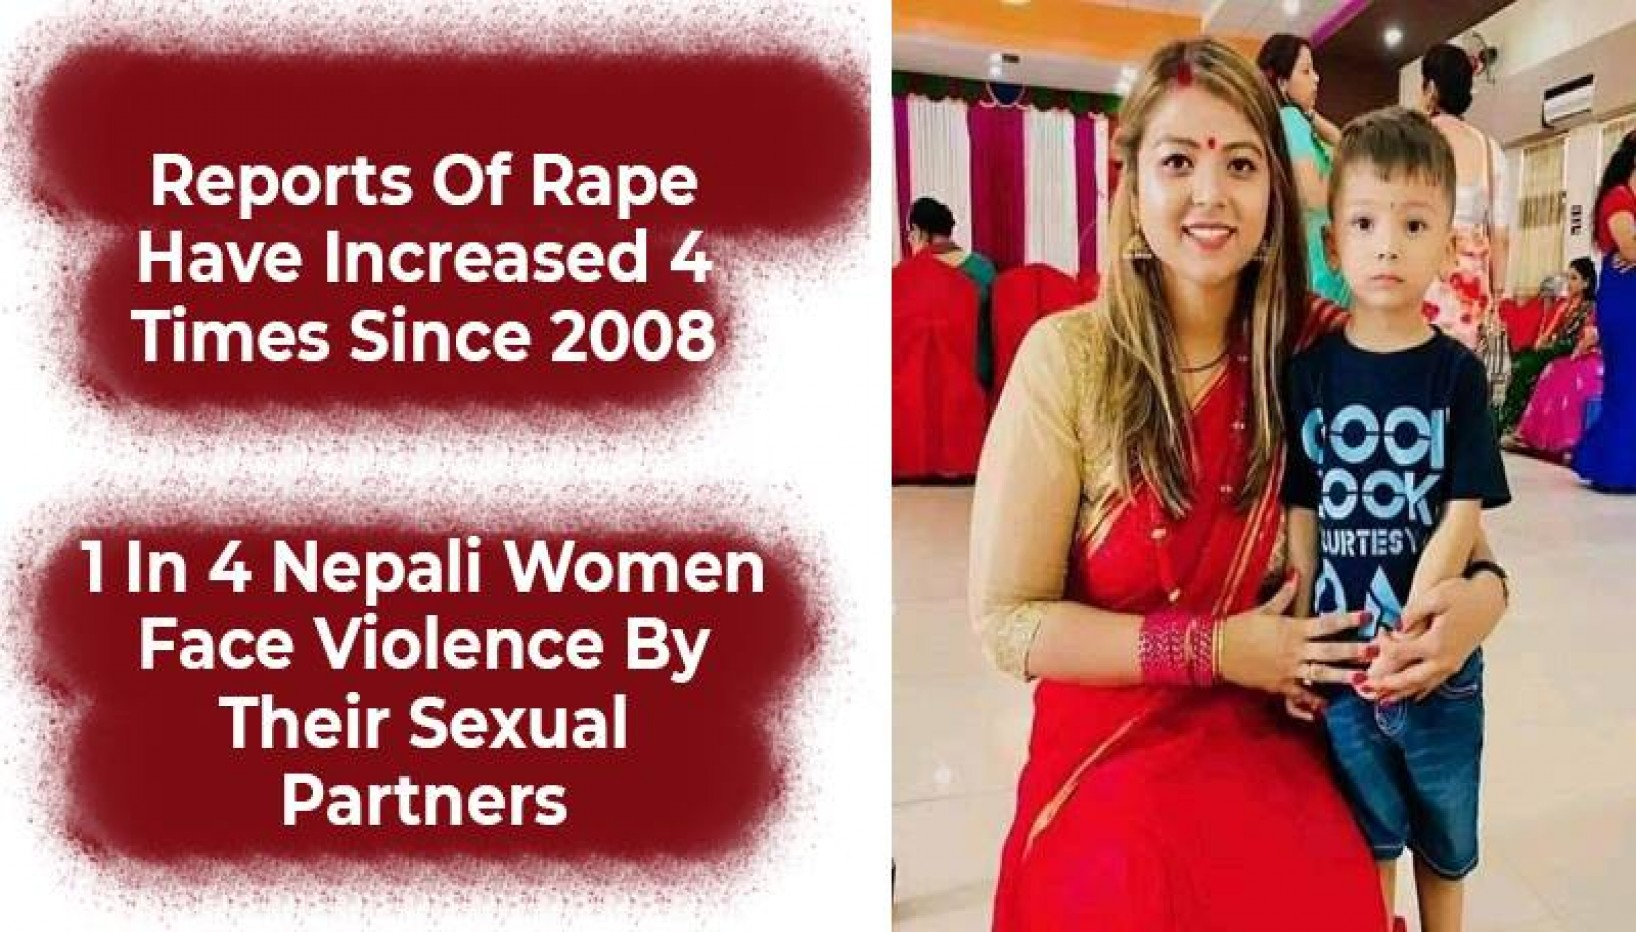 Sabita Bhandari Isn't The Only One. Here Are 8 Statistics That Highlight The Prevalence Of Violence Against Women